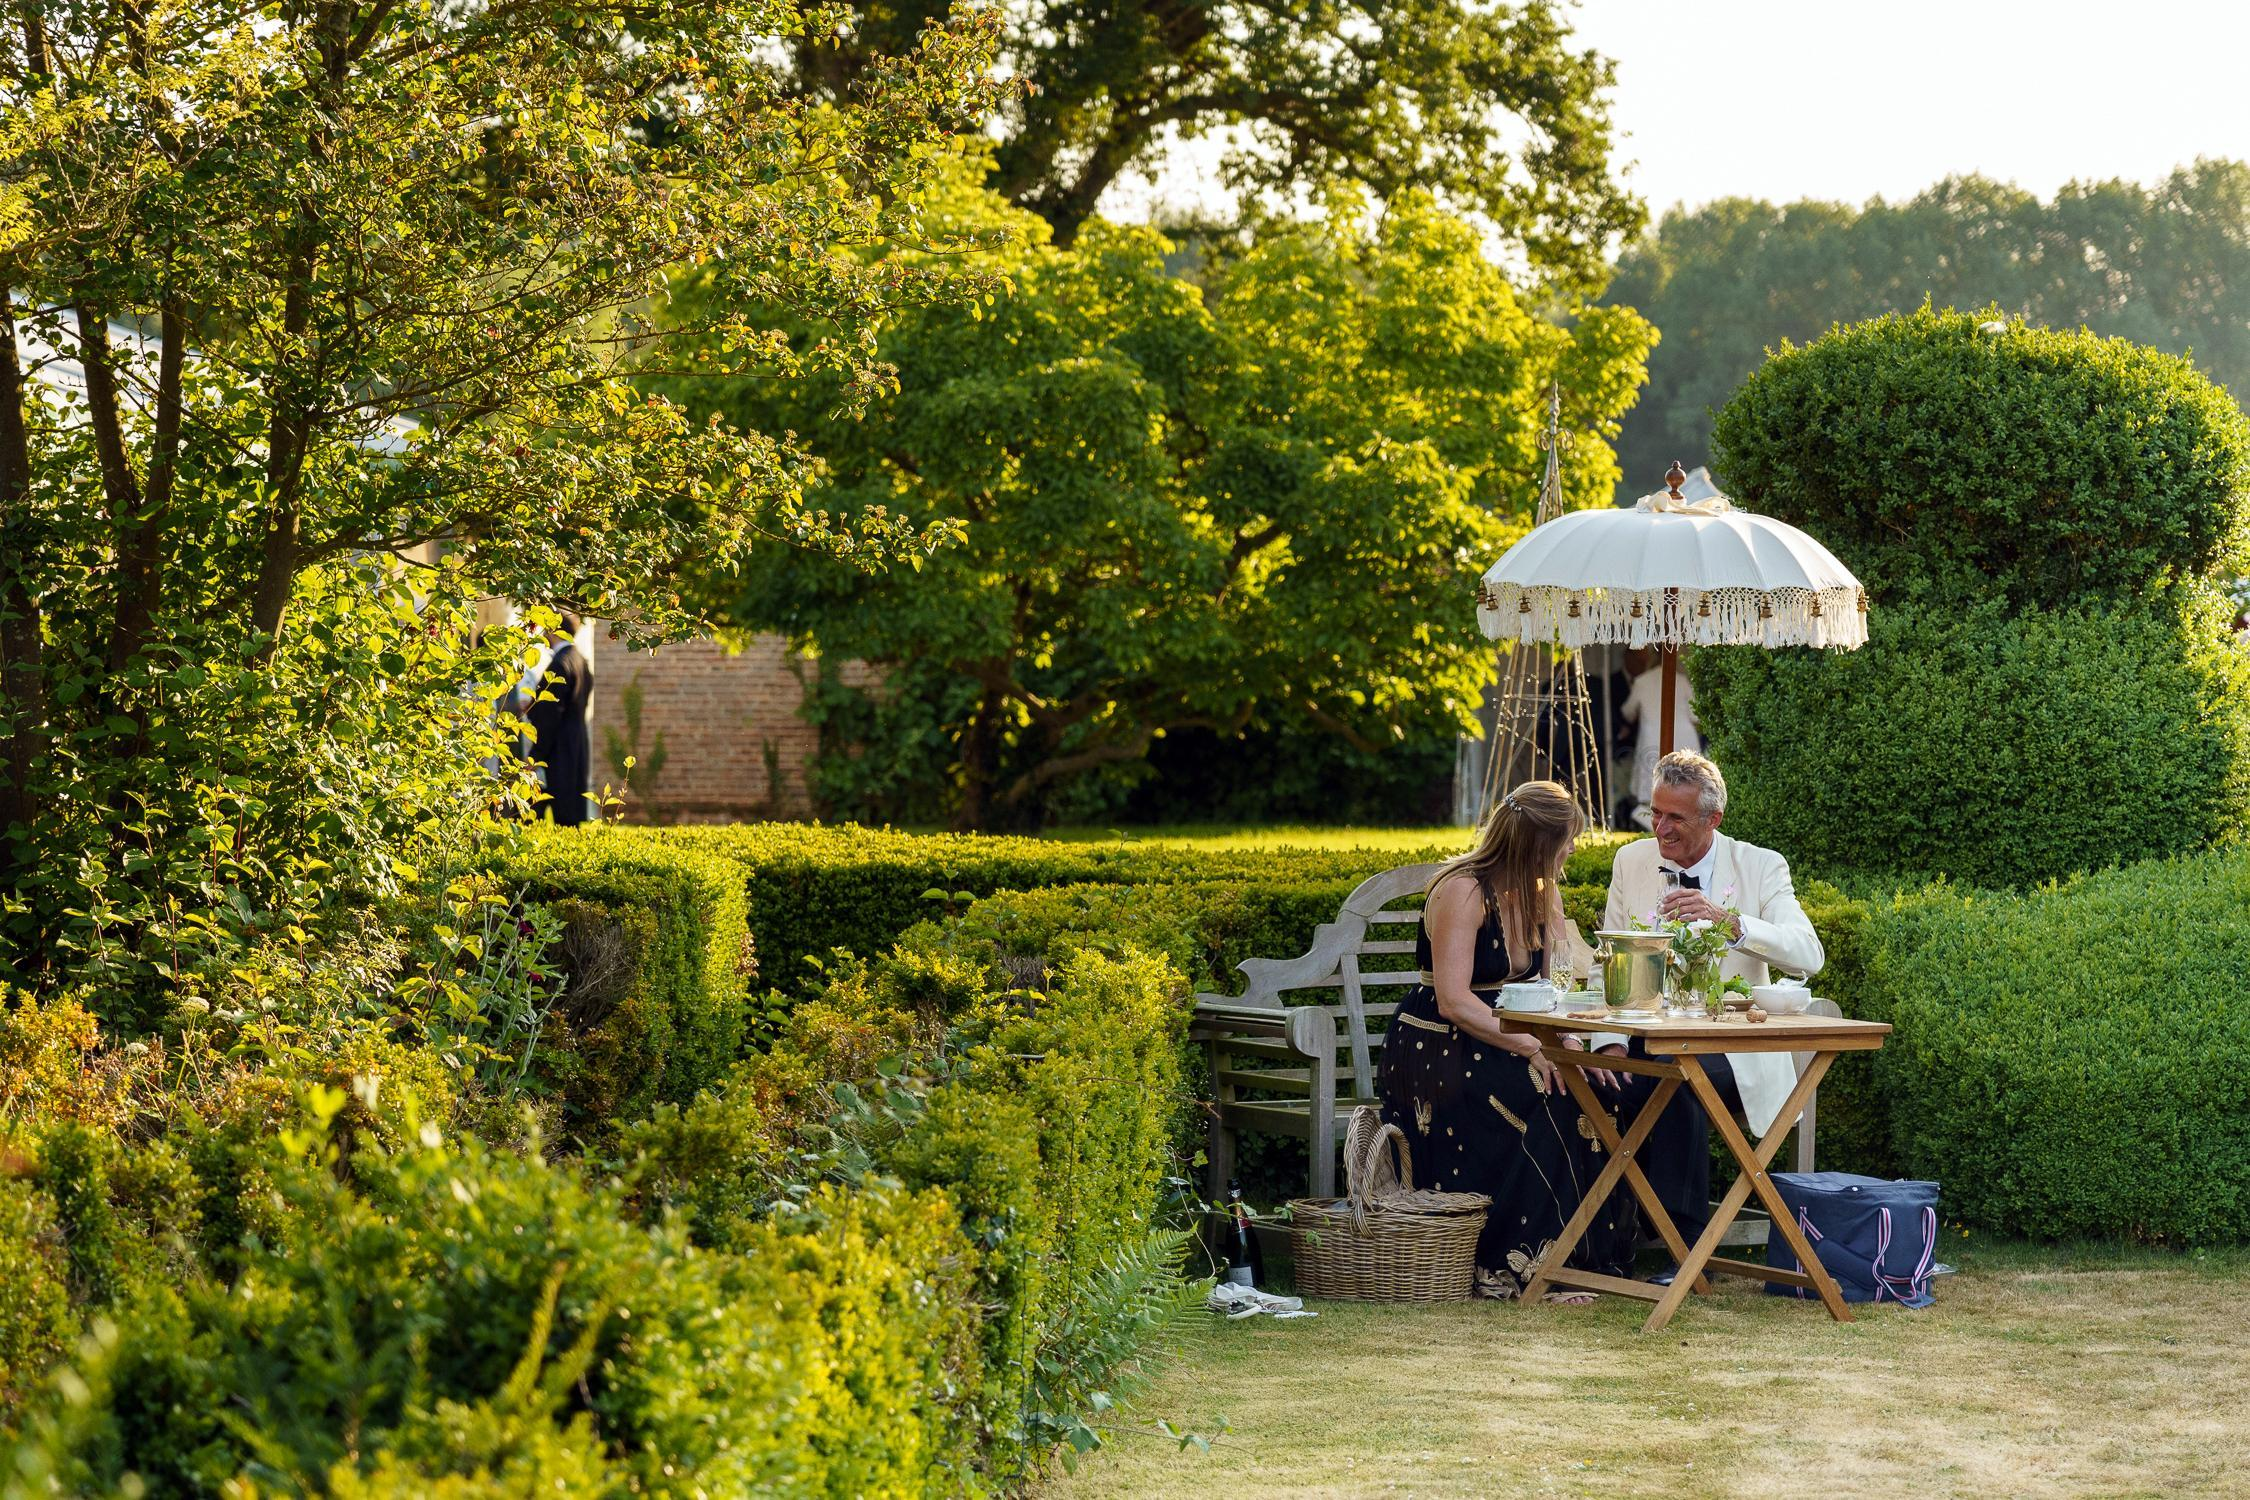 Country house opera: Exploring the very essence of English art